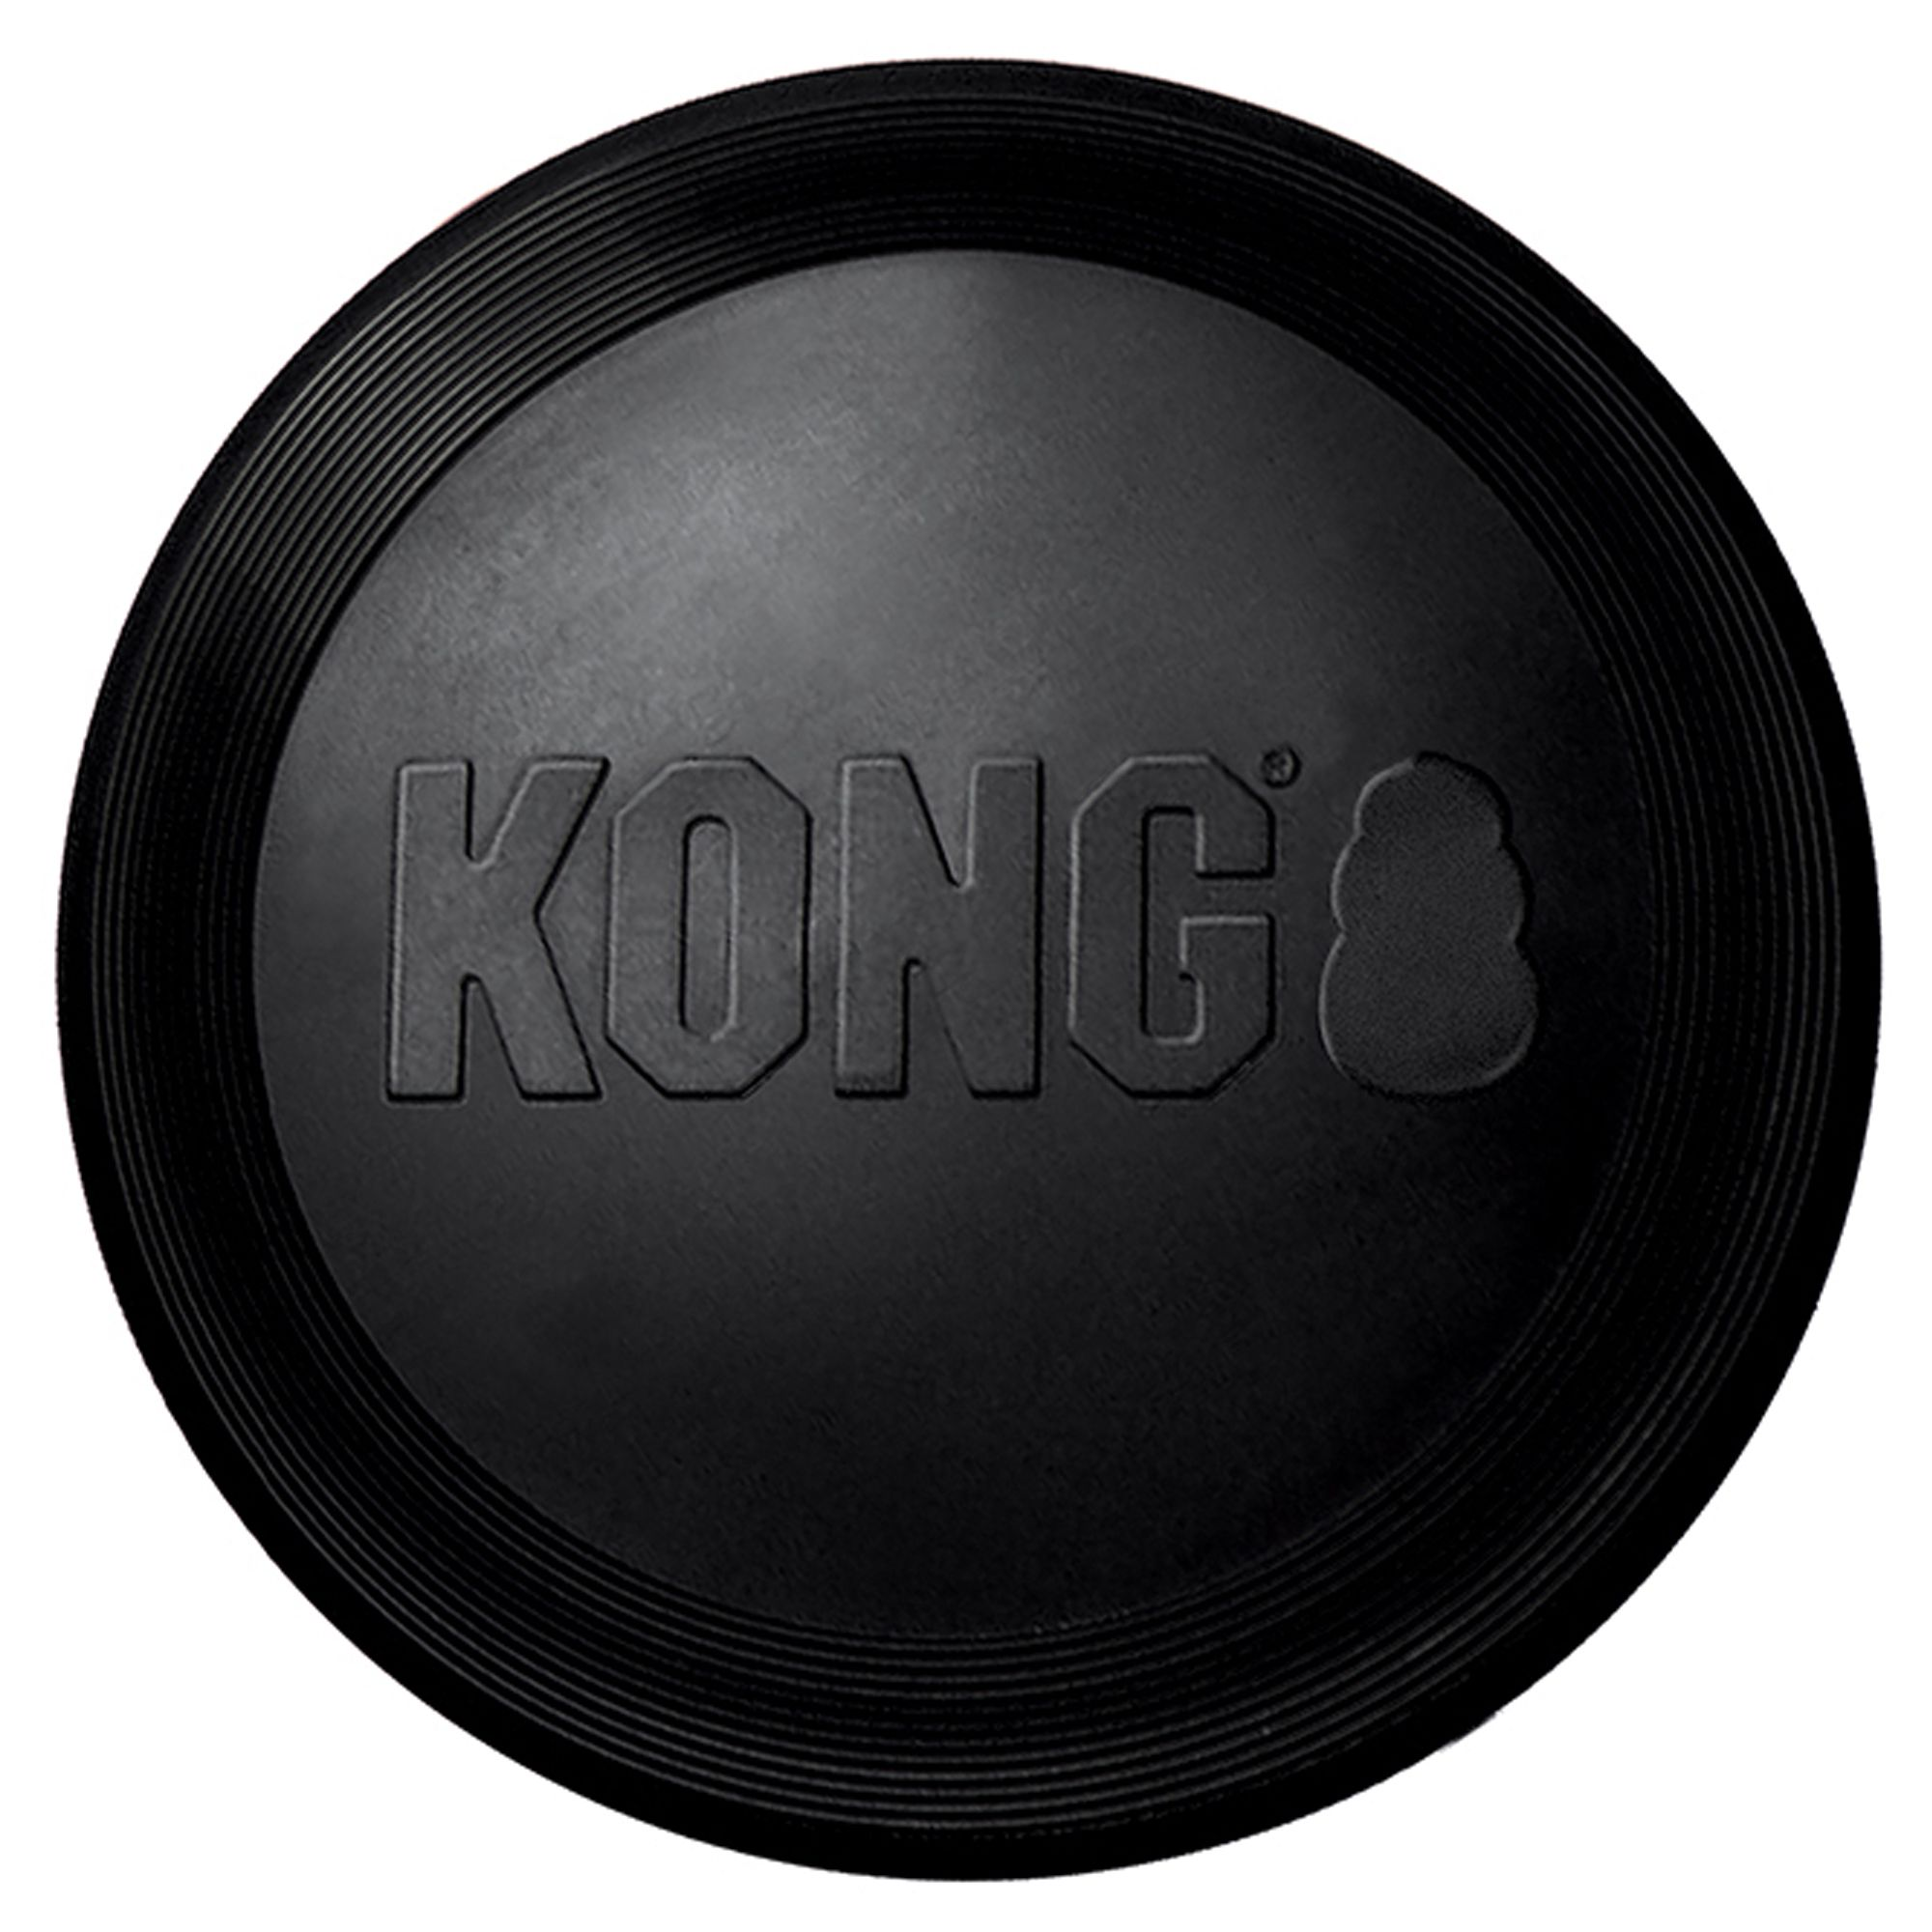 Kong Extreme Flyer Dog Toy size: Large, Black 5150593